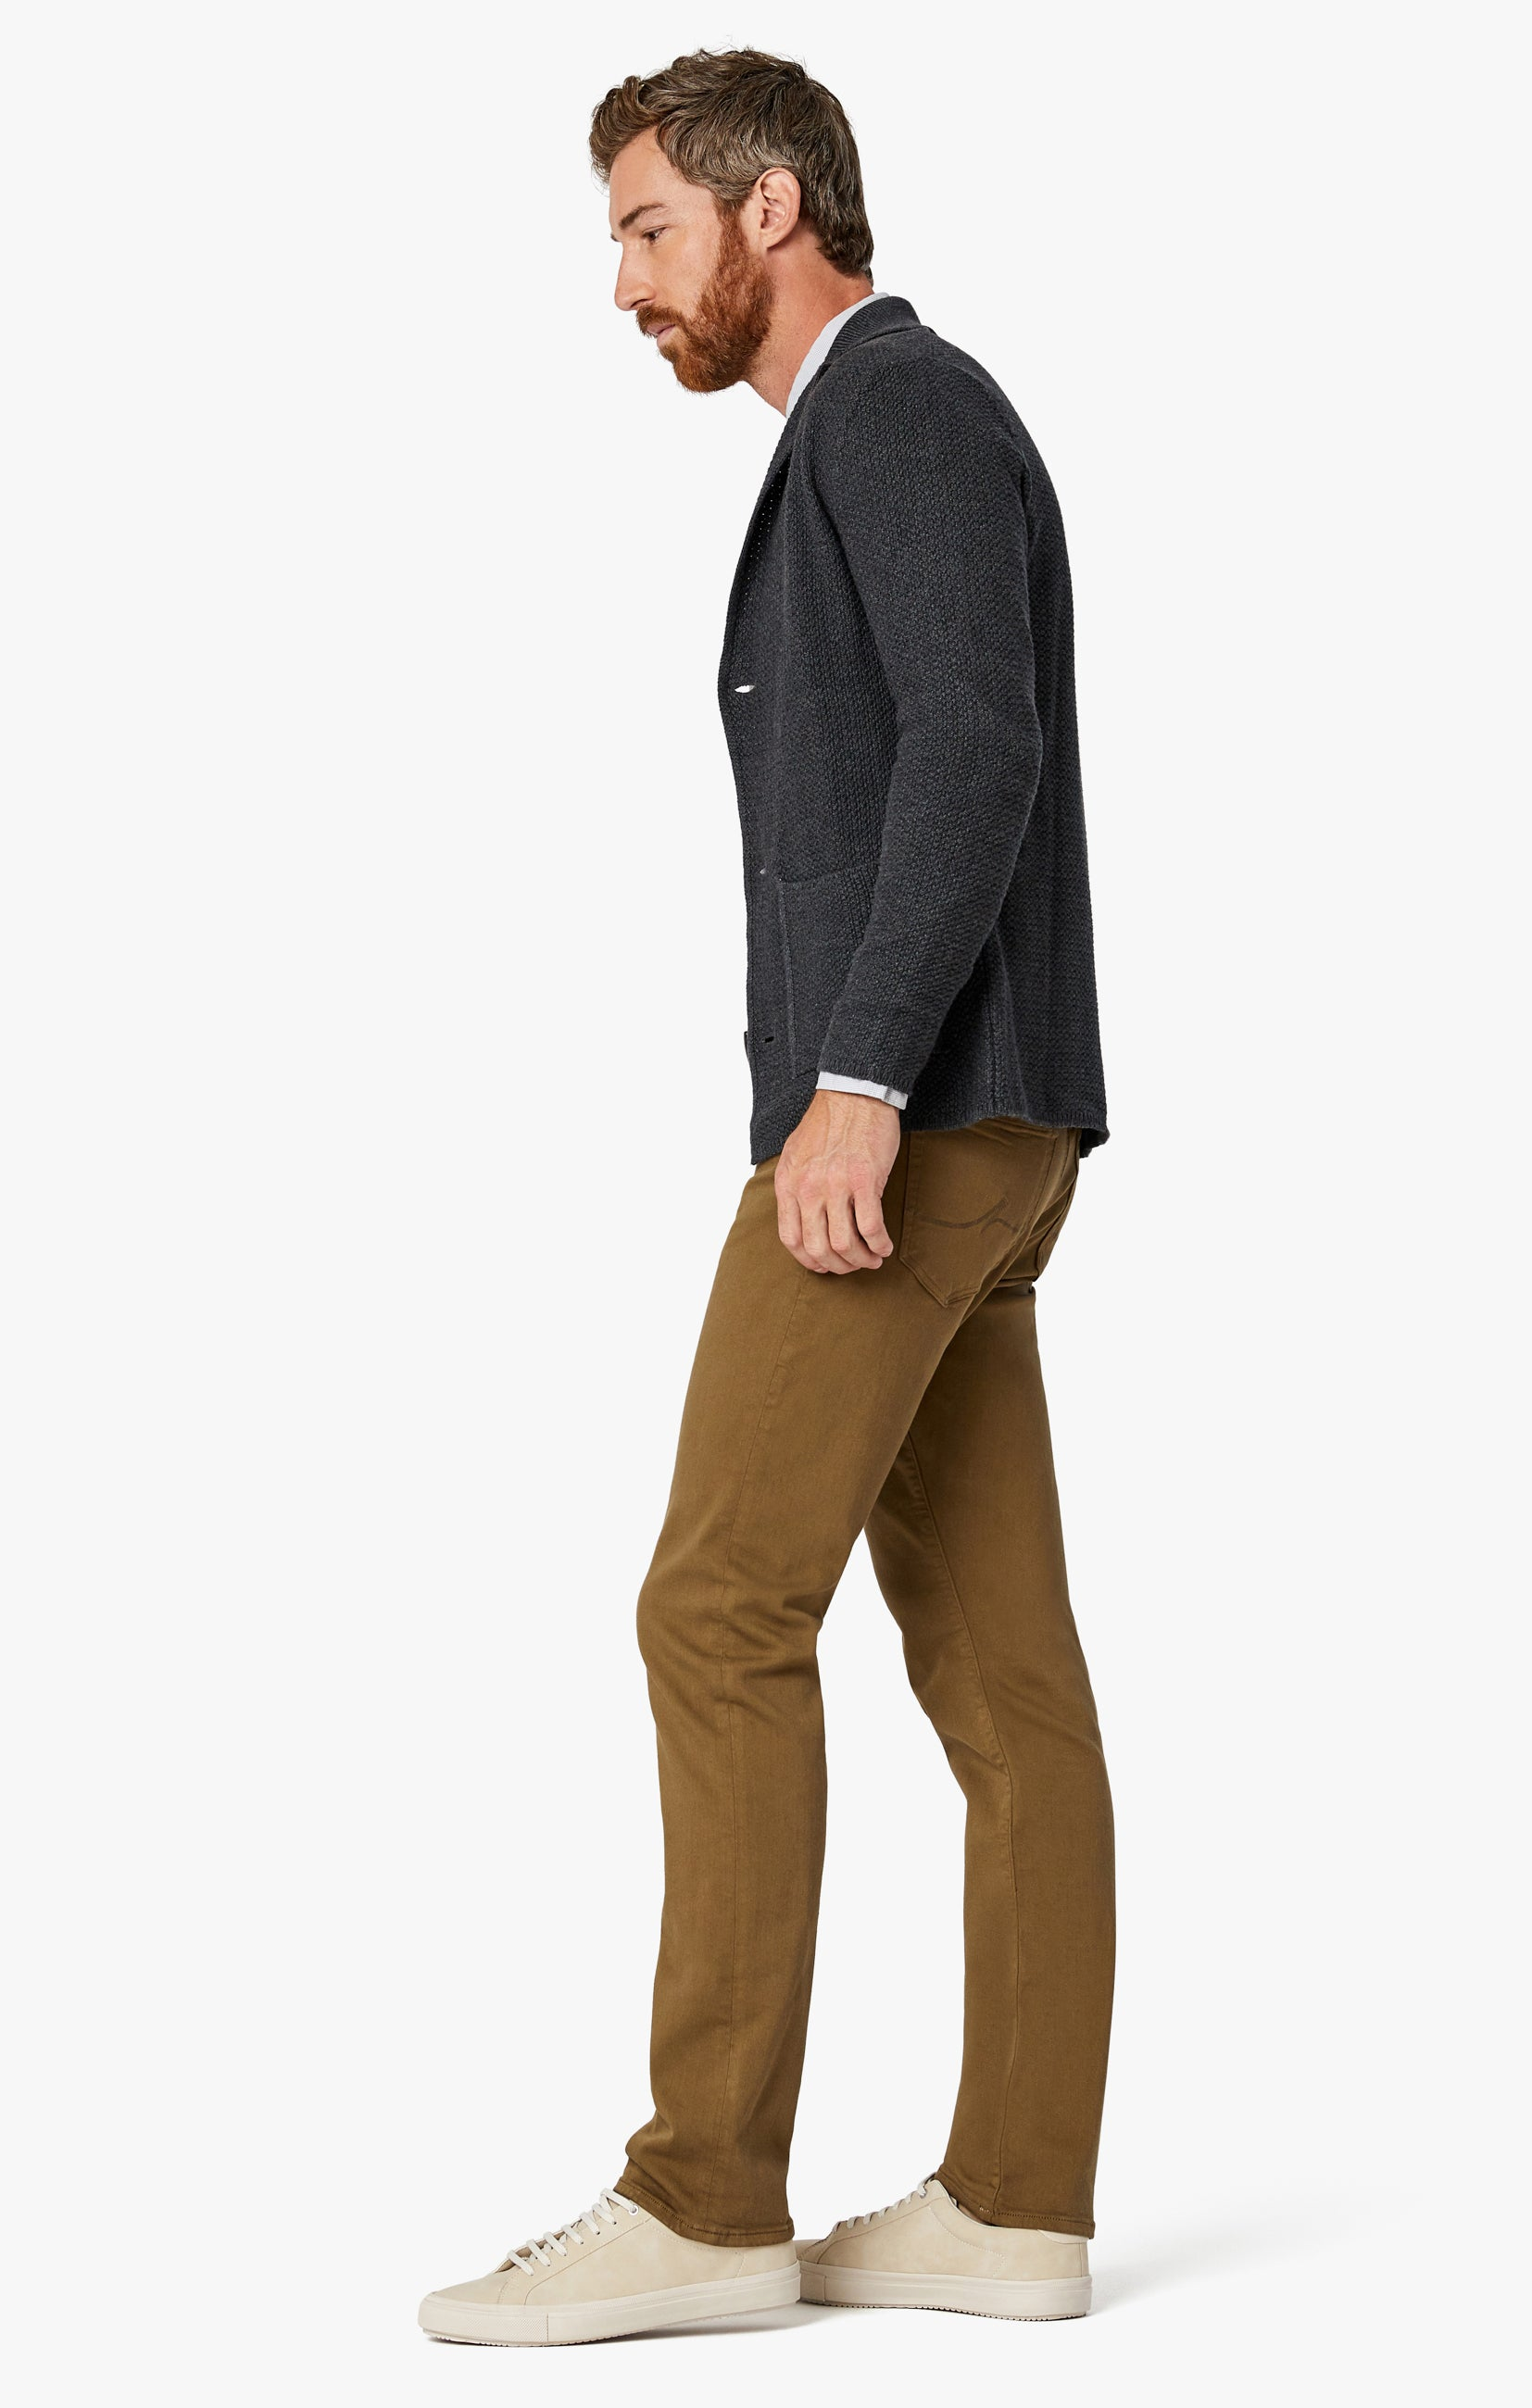 Charisma Relaxed Straight Pants in Tobacco Comfort Image 7